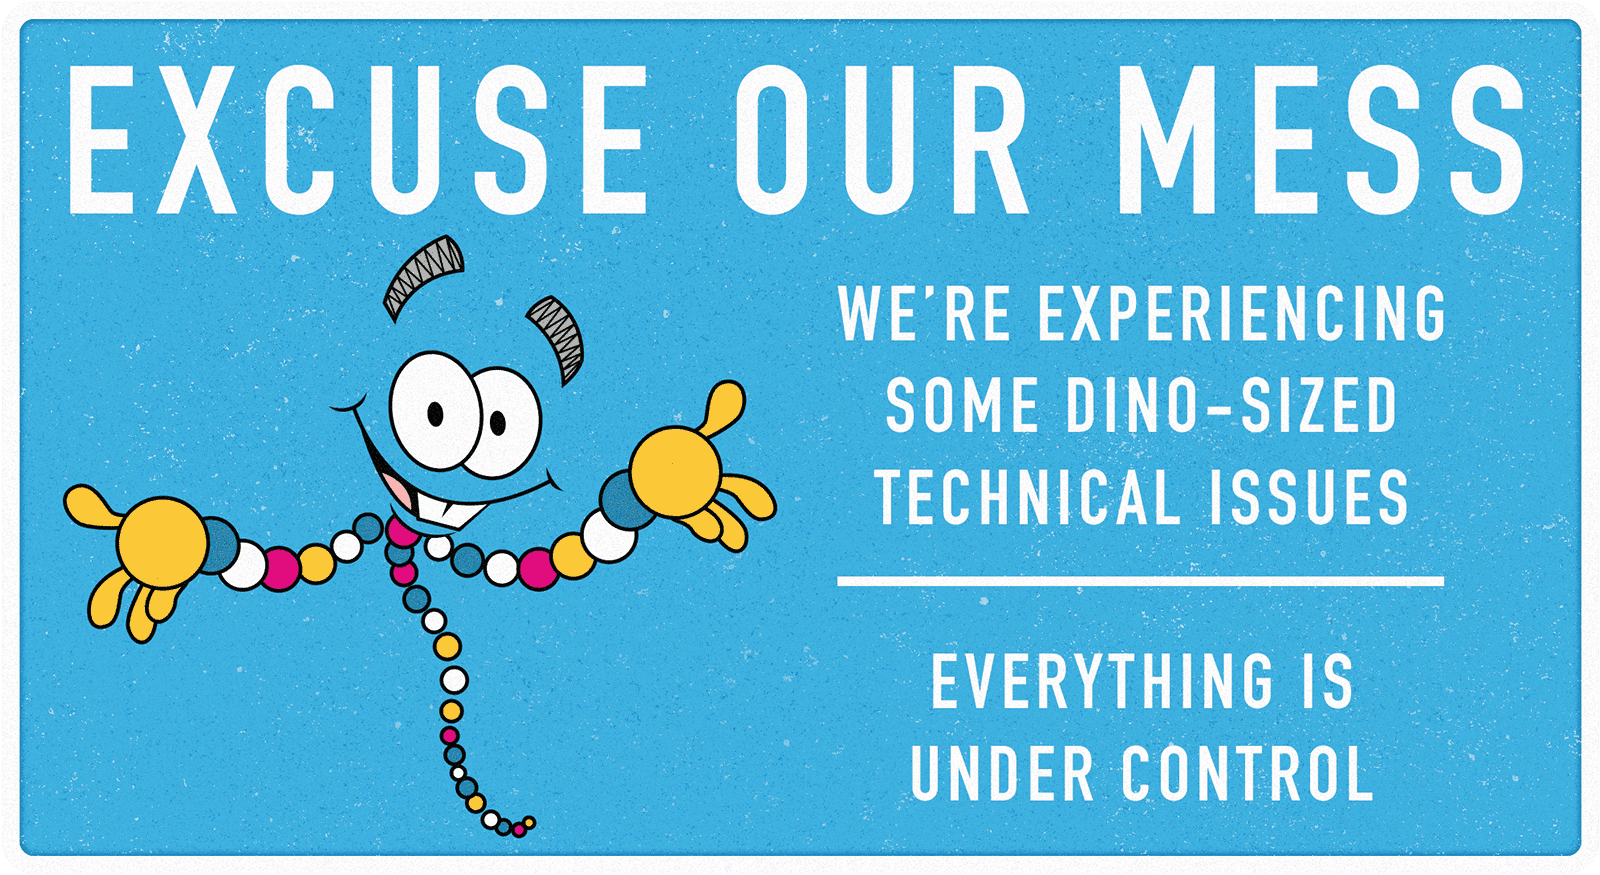 Excuse Our Mess. We're experiencing some dino-sized technical issues. Everything's under control.